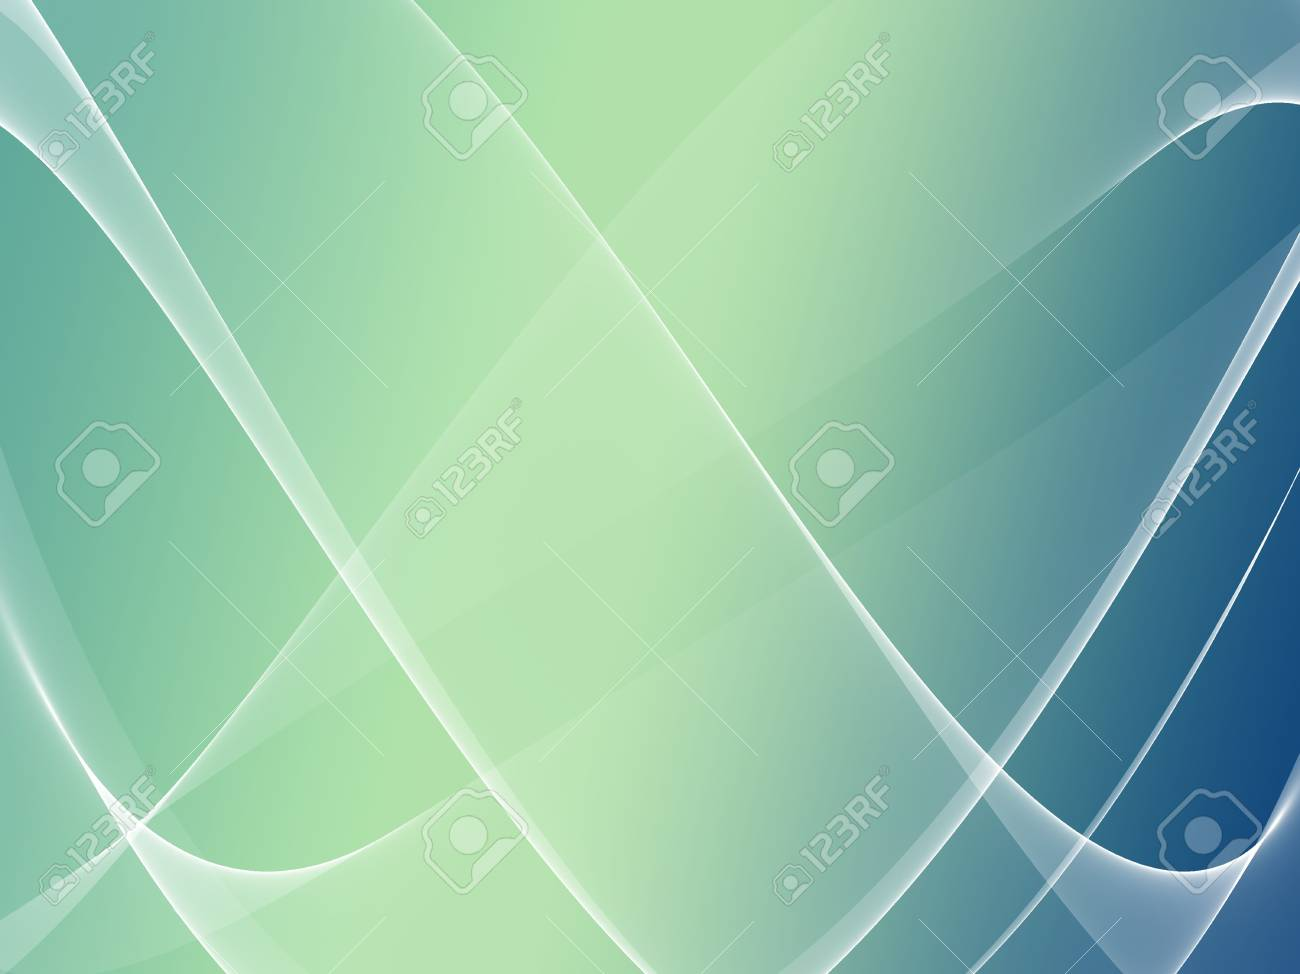 abstract background art wallpaper graphic Stock Photo - 747202